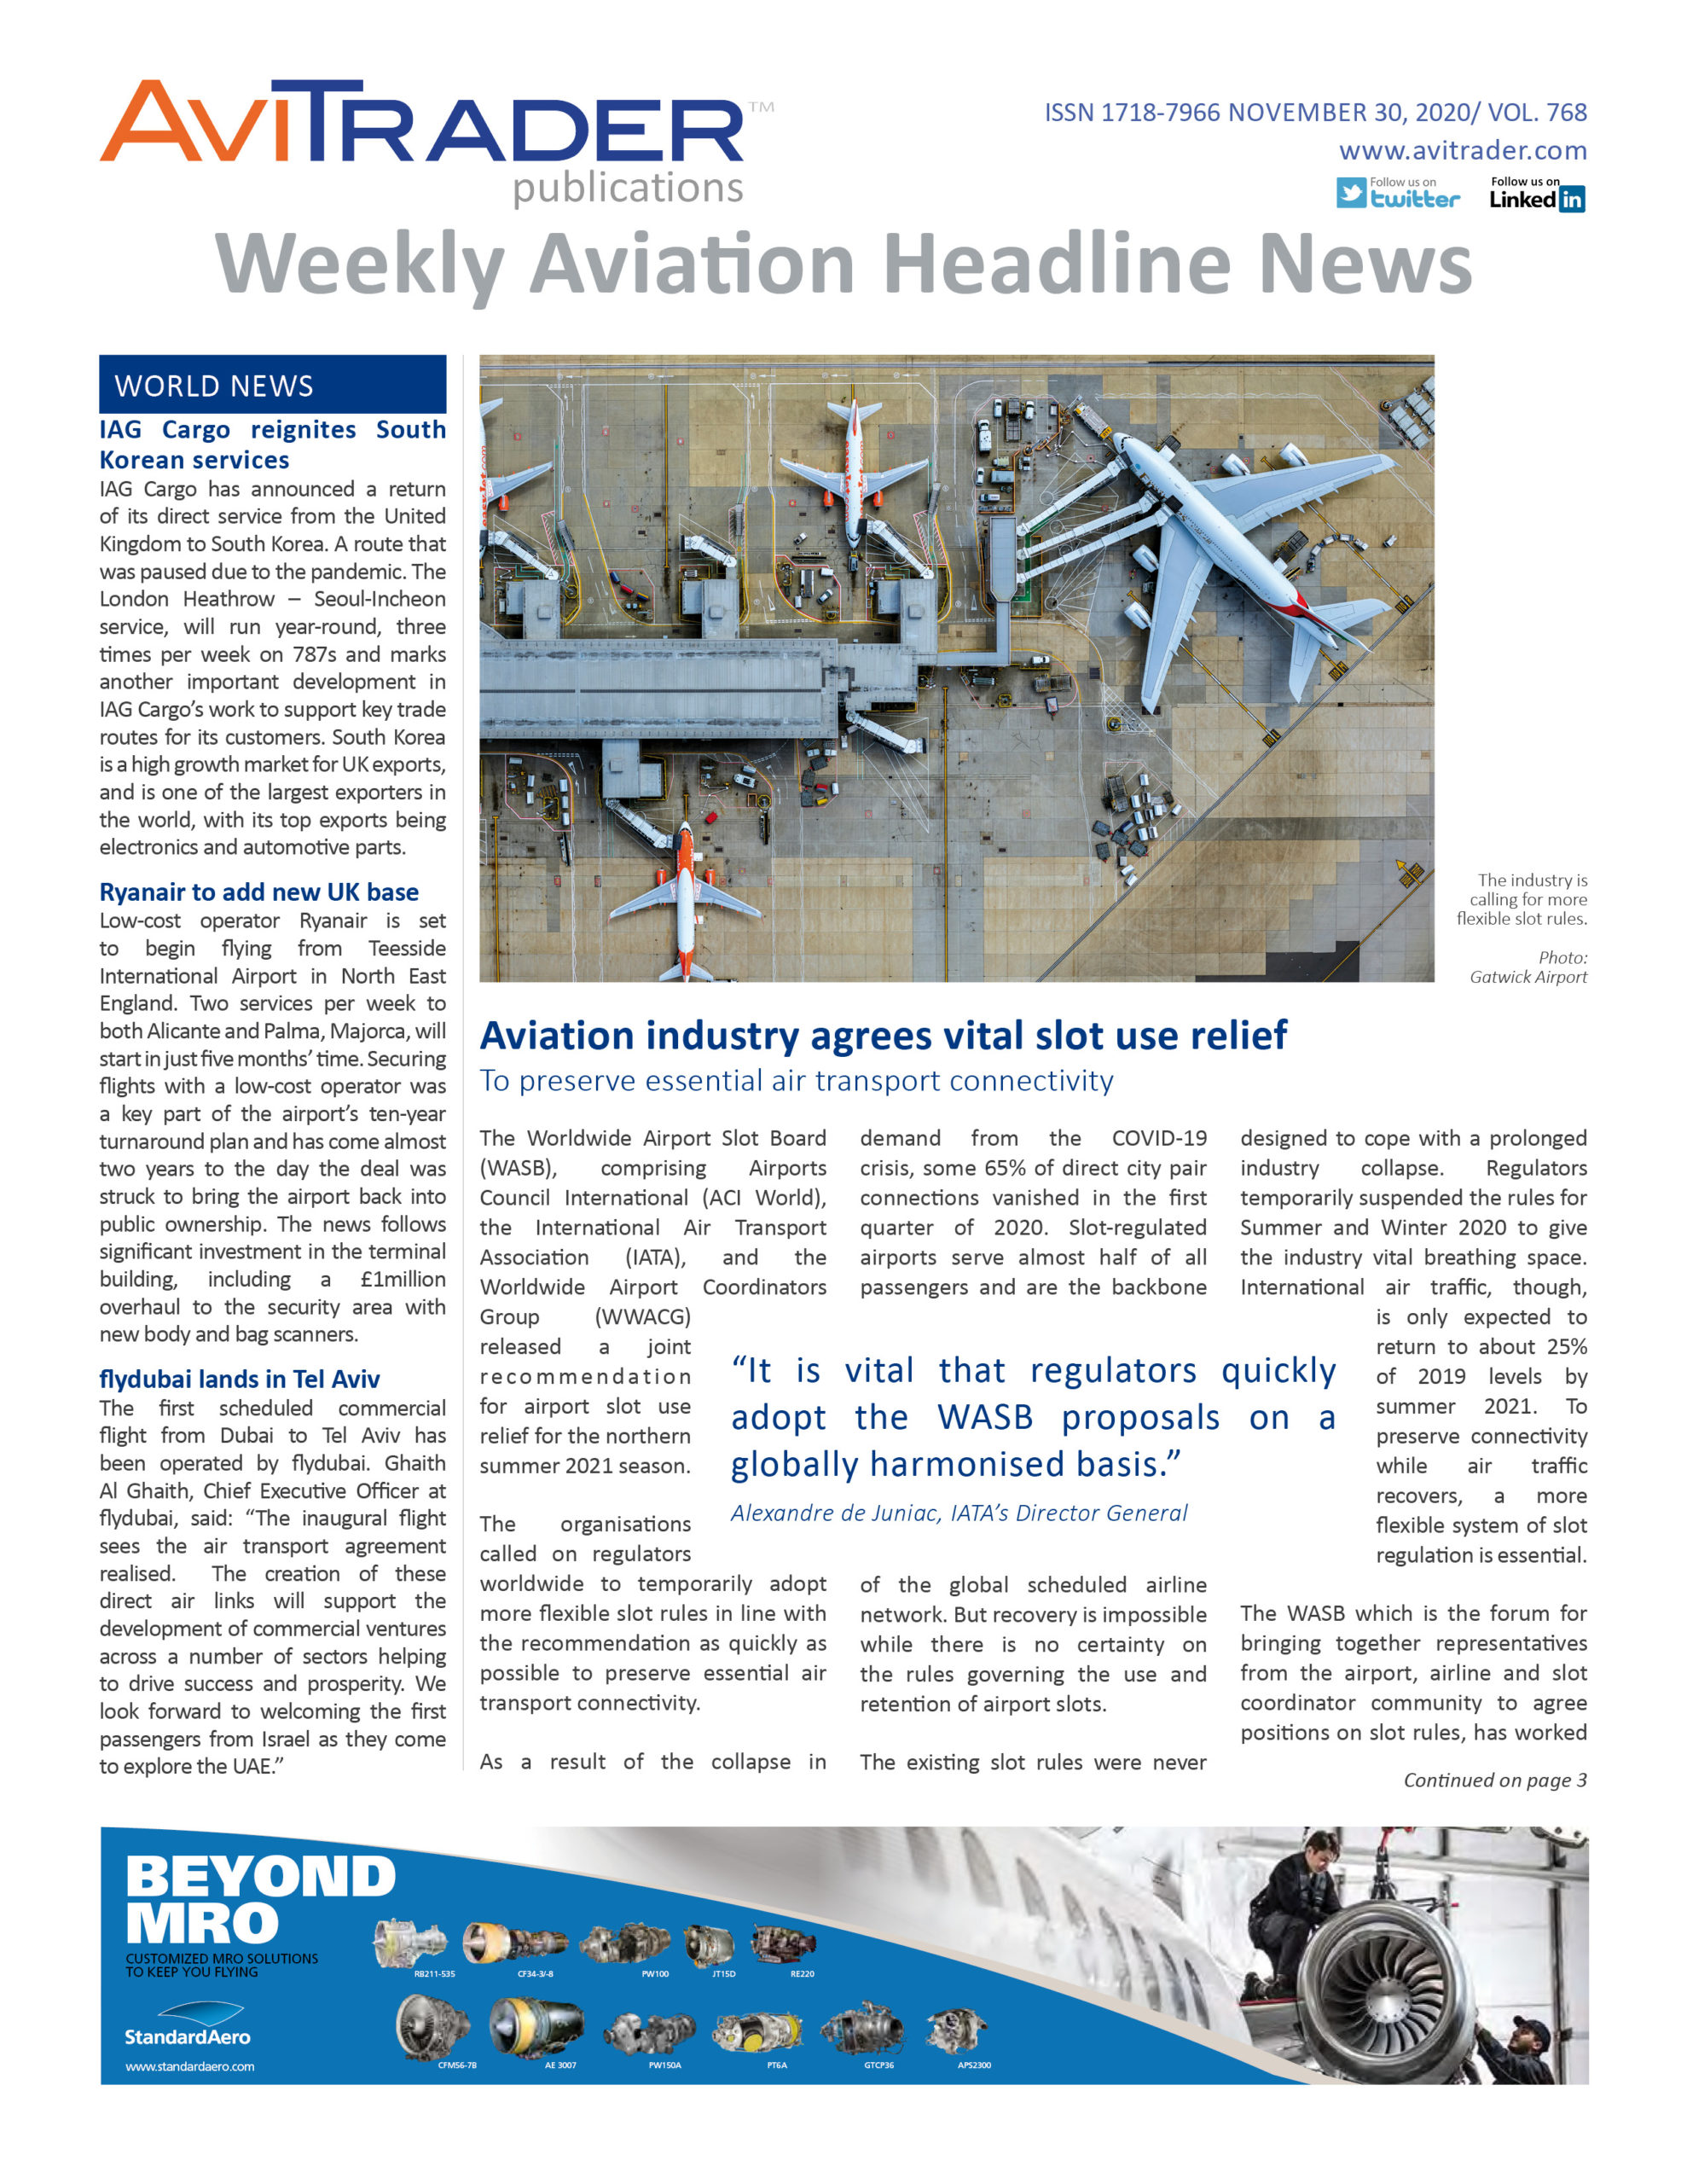 AviTrader_Weekly_Headline_News_Cover_2020-11-30